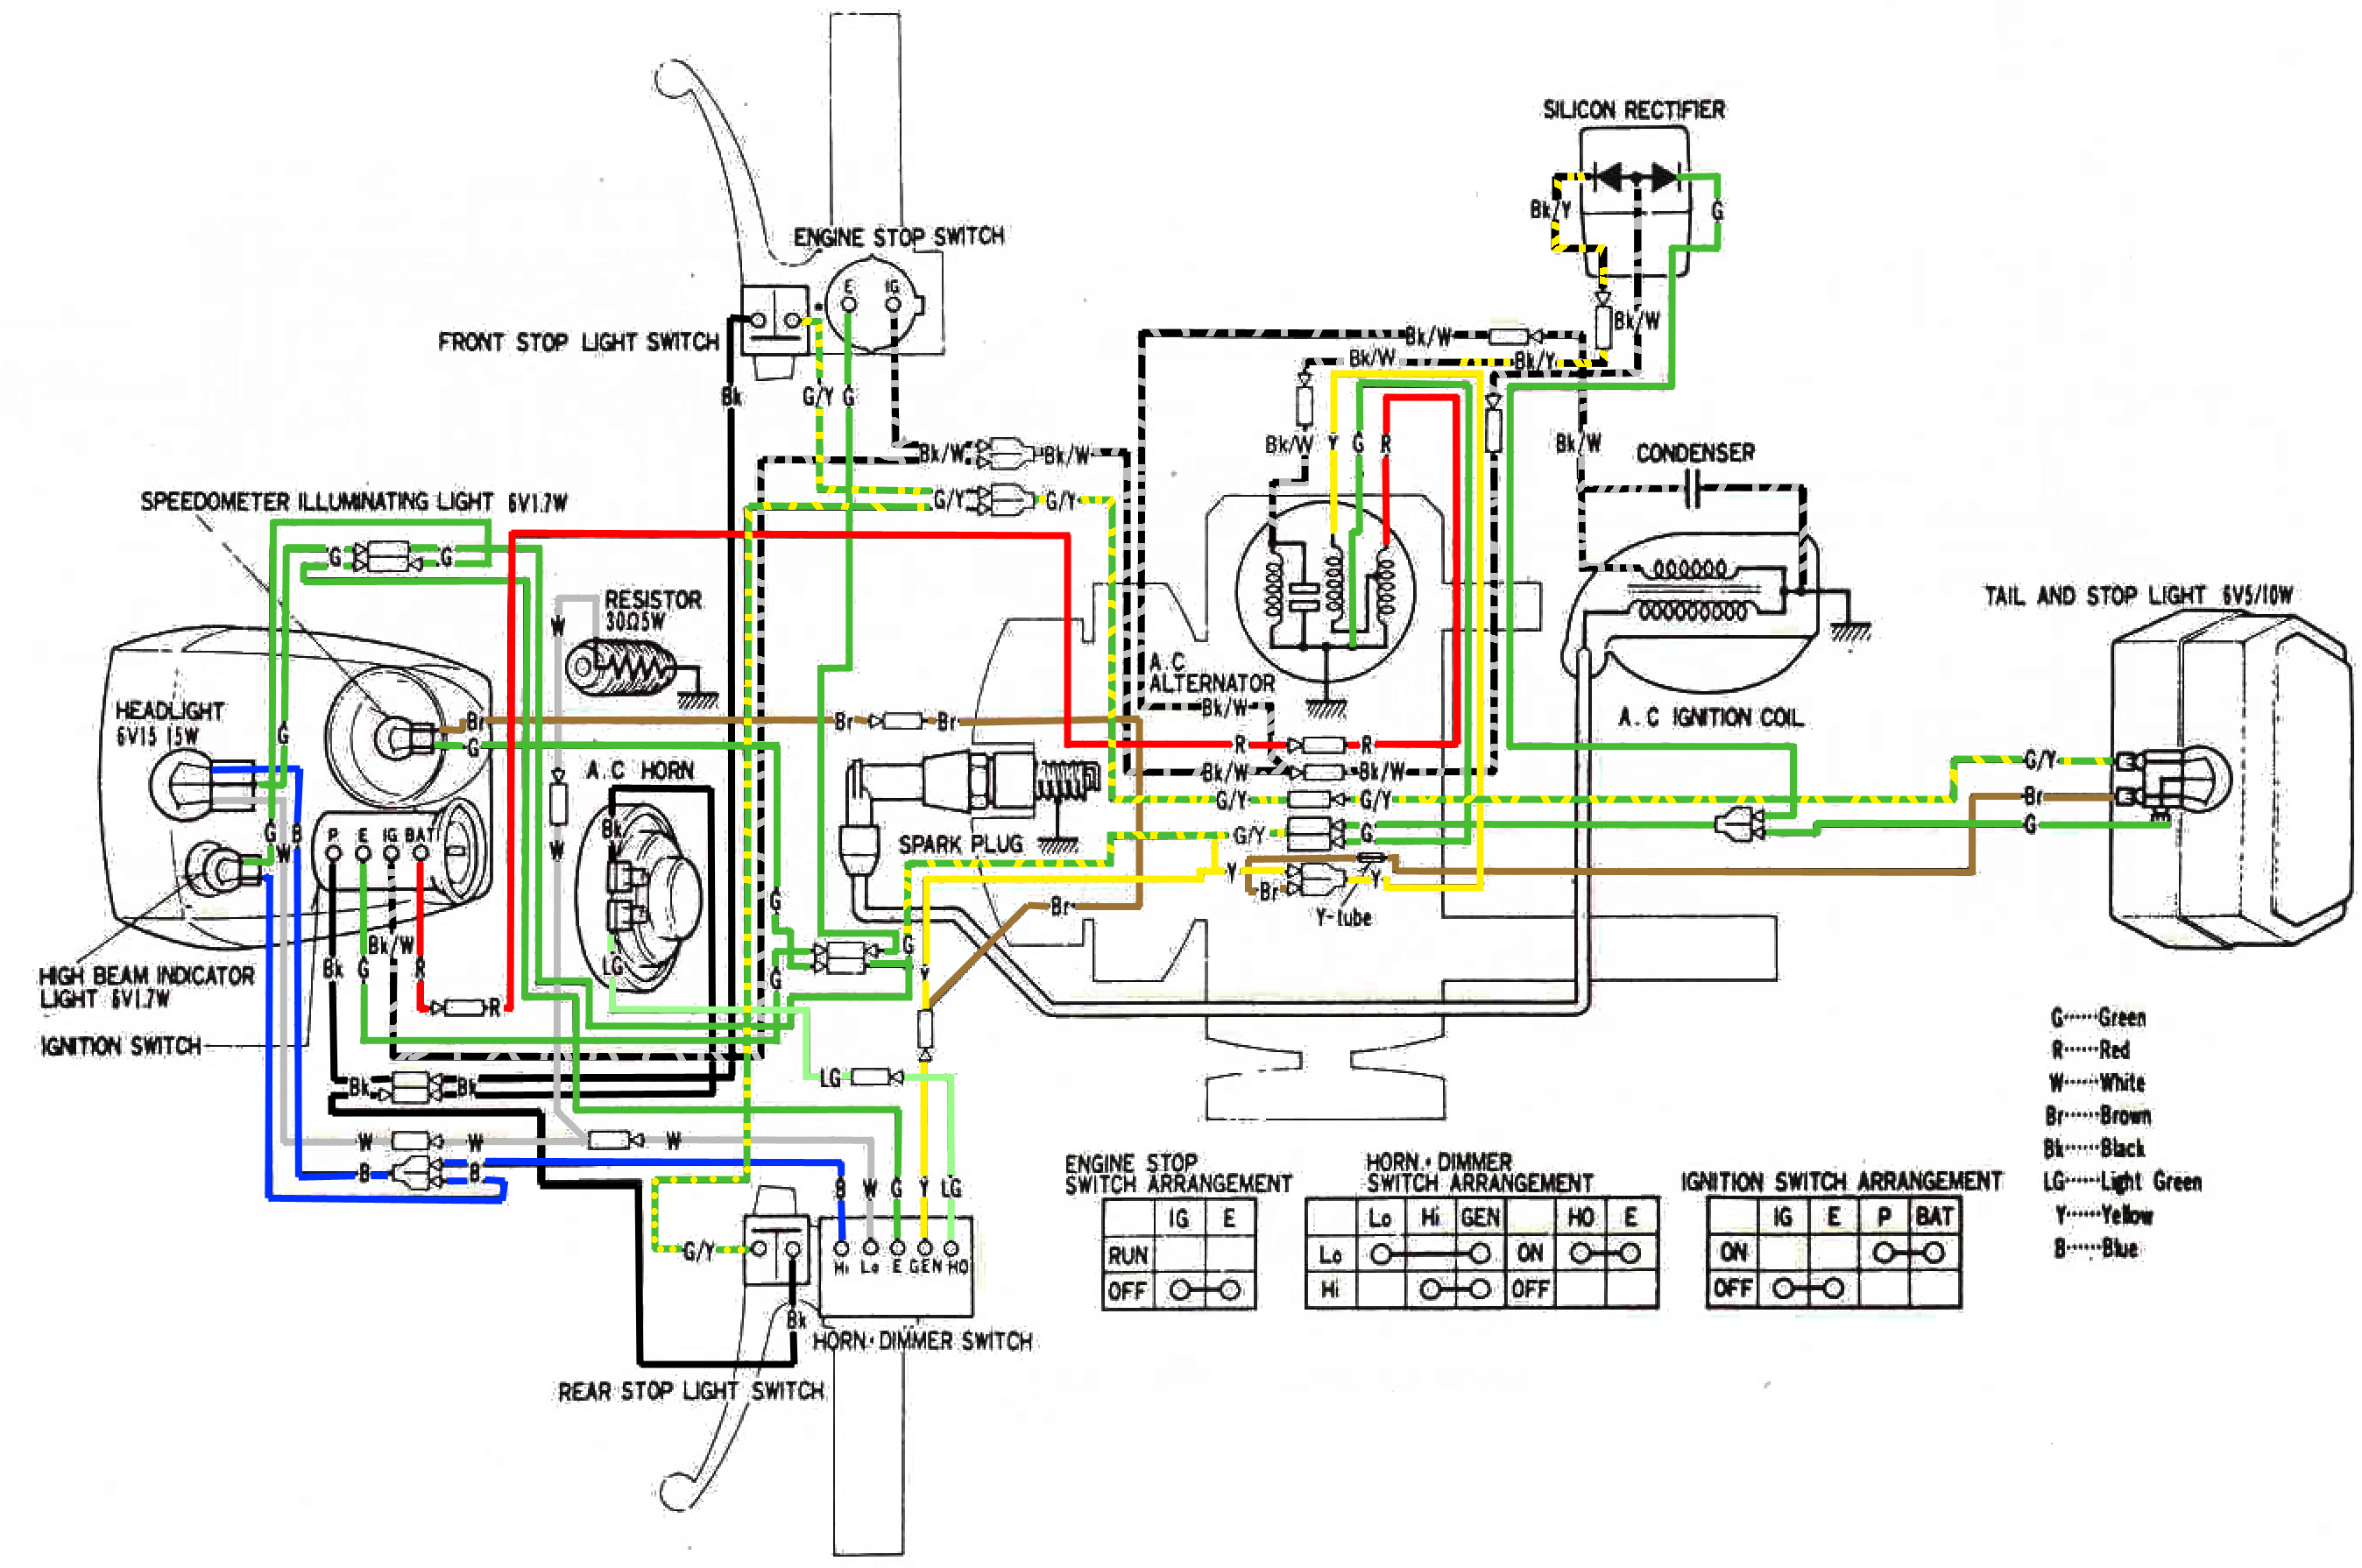 honda qr 50 wiring diagram for hunter ceiling fan with remote express nc50 c100